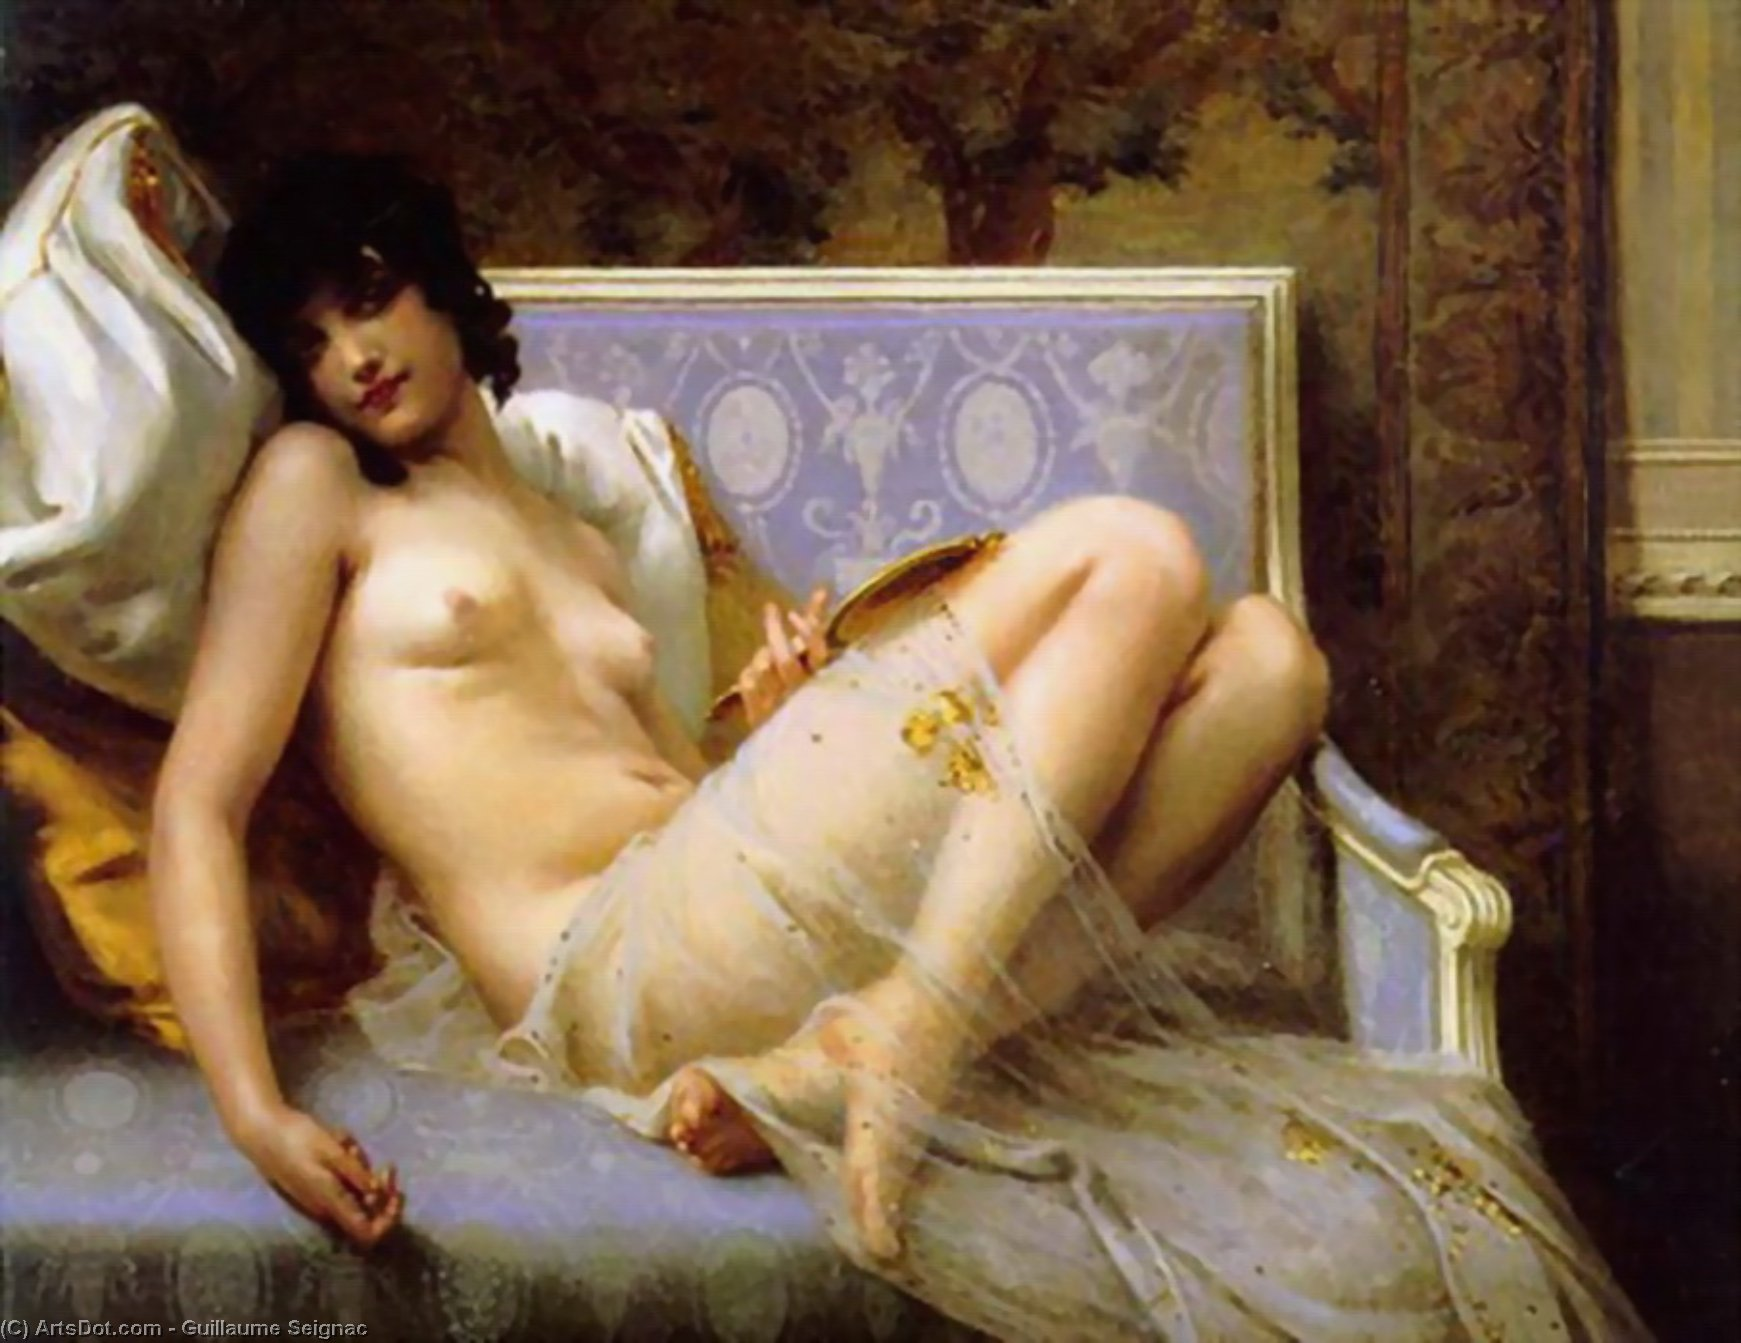 Jeune femme denudee sur canape by Guillaume Seignac (1870-1924, France) | Art Reproduction | ArtsDot.com